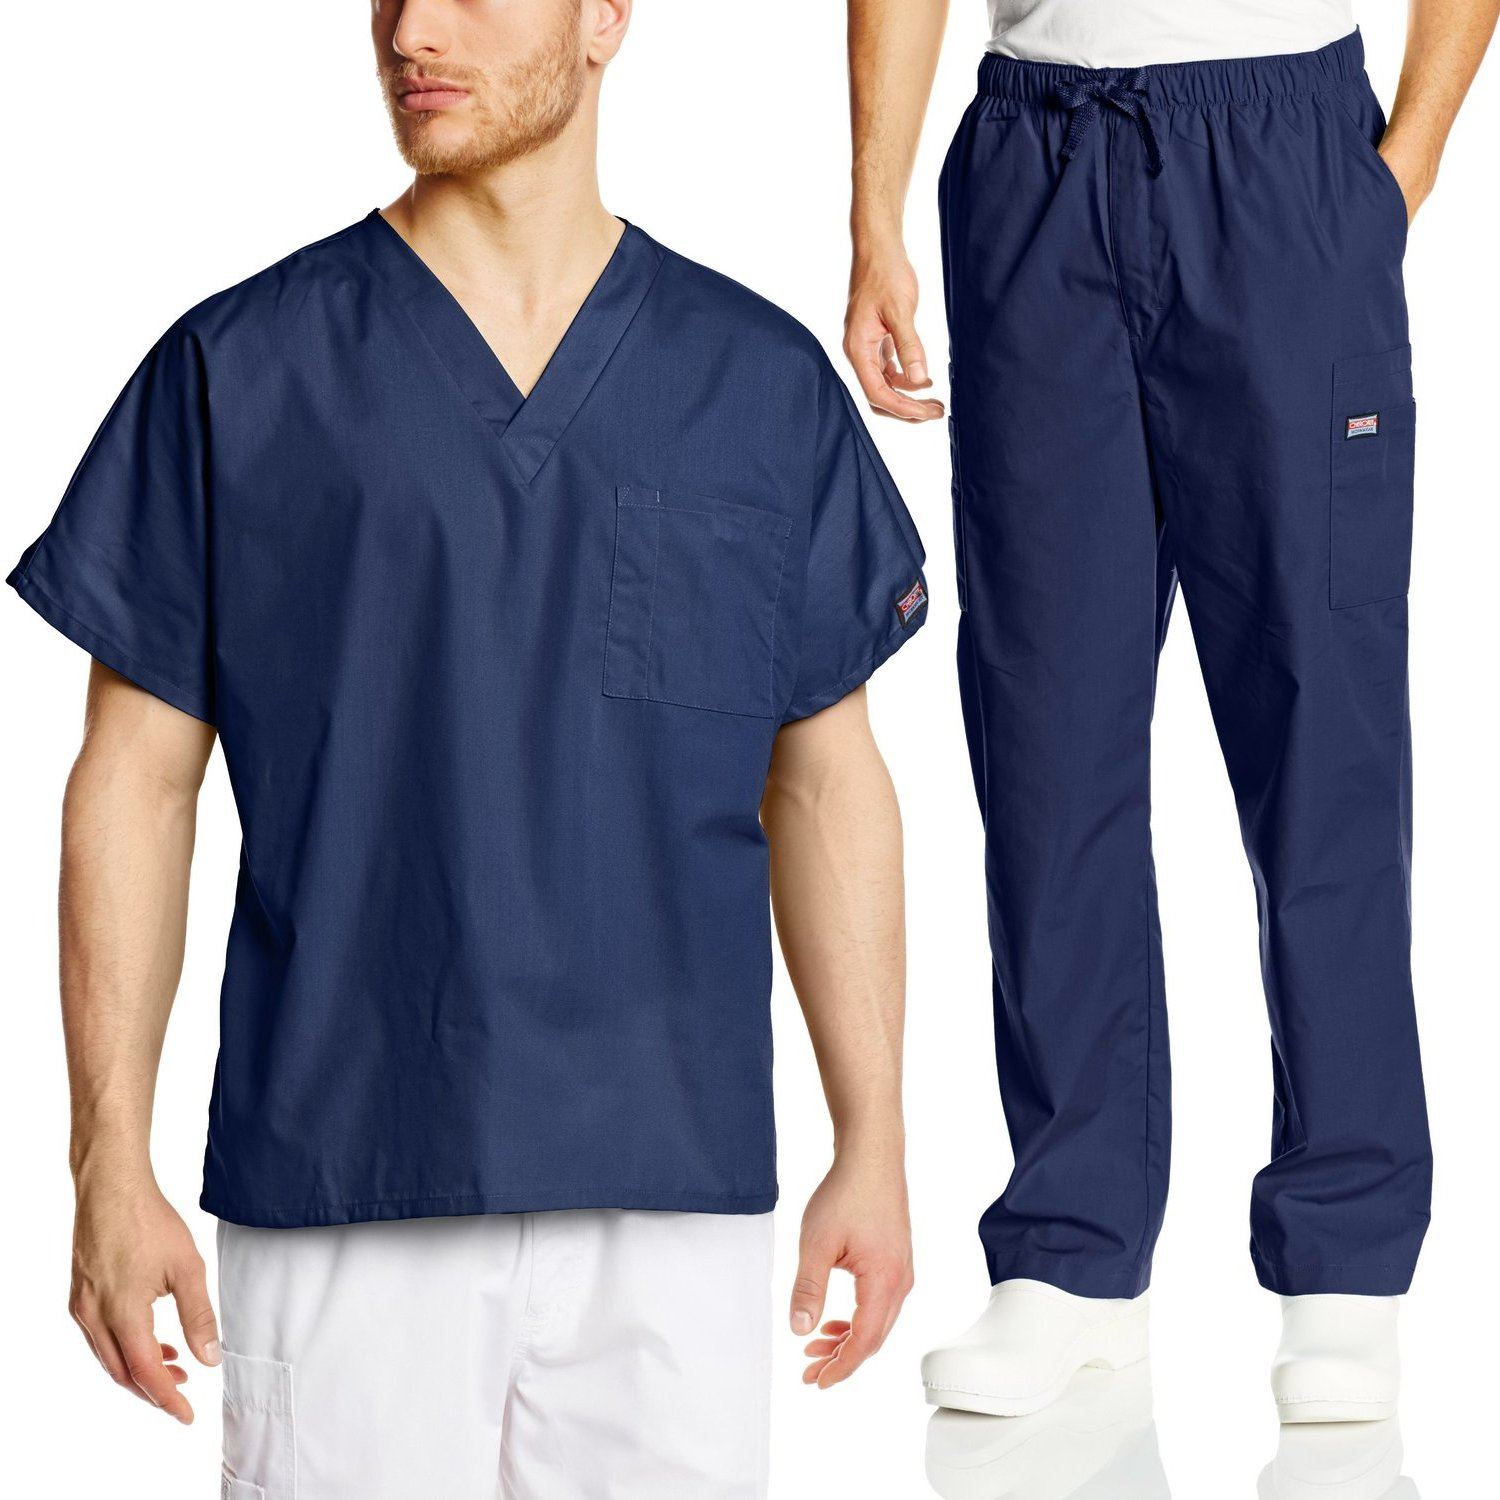 Cherokee Mens Workwear Scrub Set Medical/Dentist Uniform V-neck Top & Cargo Pant (Navy, Large)